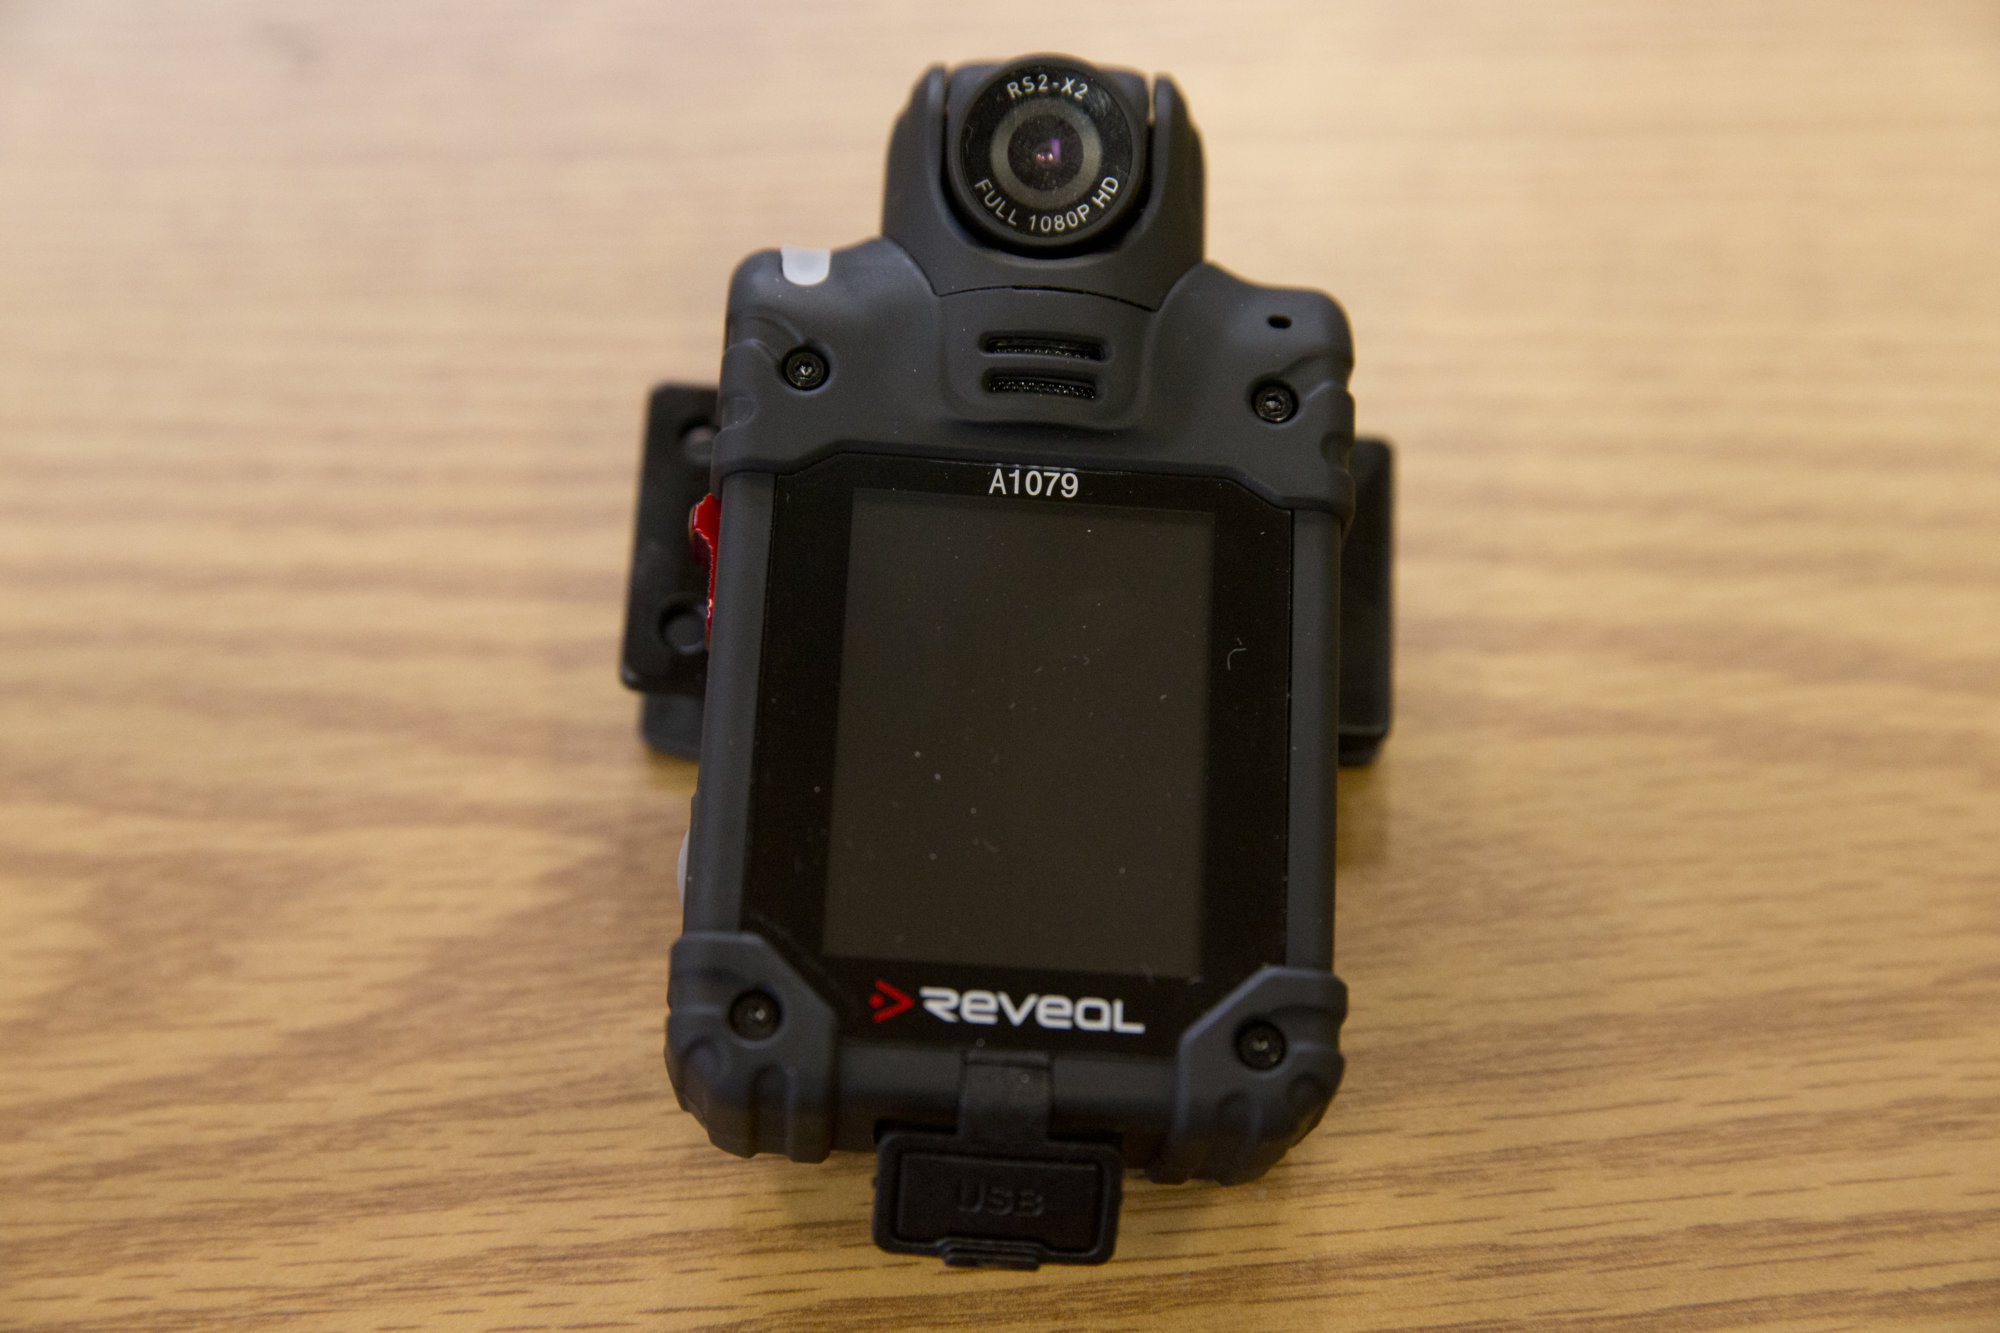 City of Manassas planning to issue police-worn body cameras